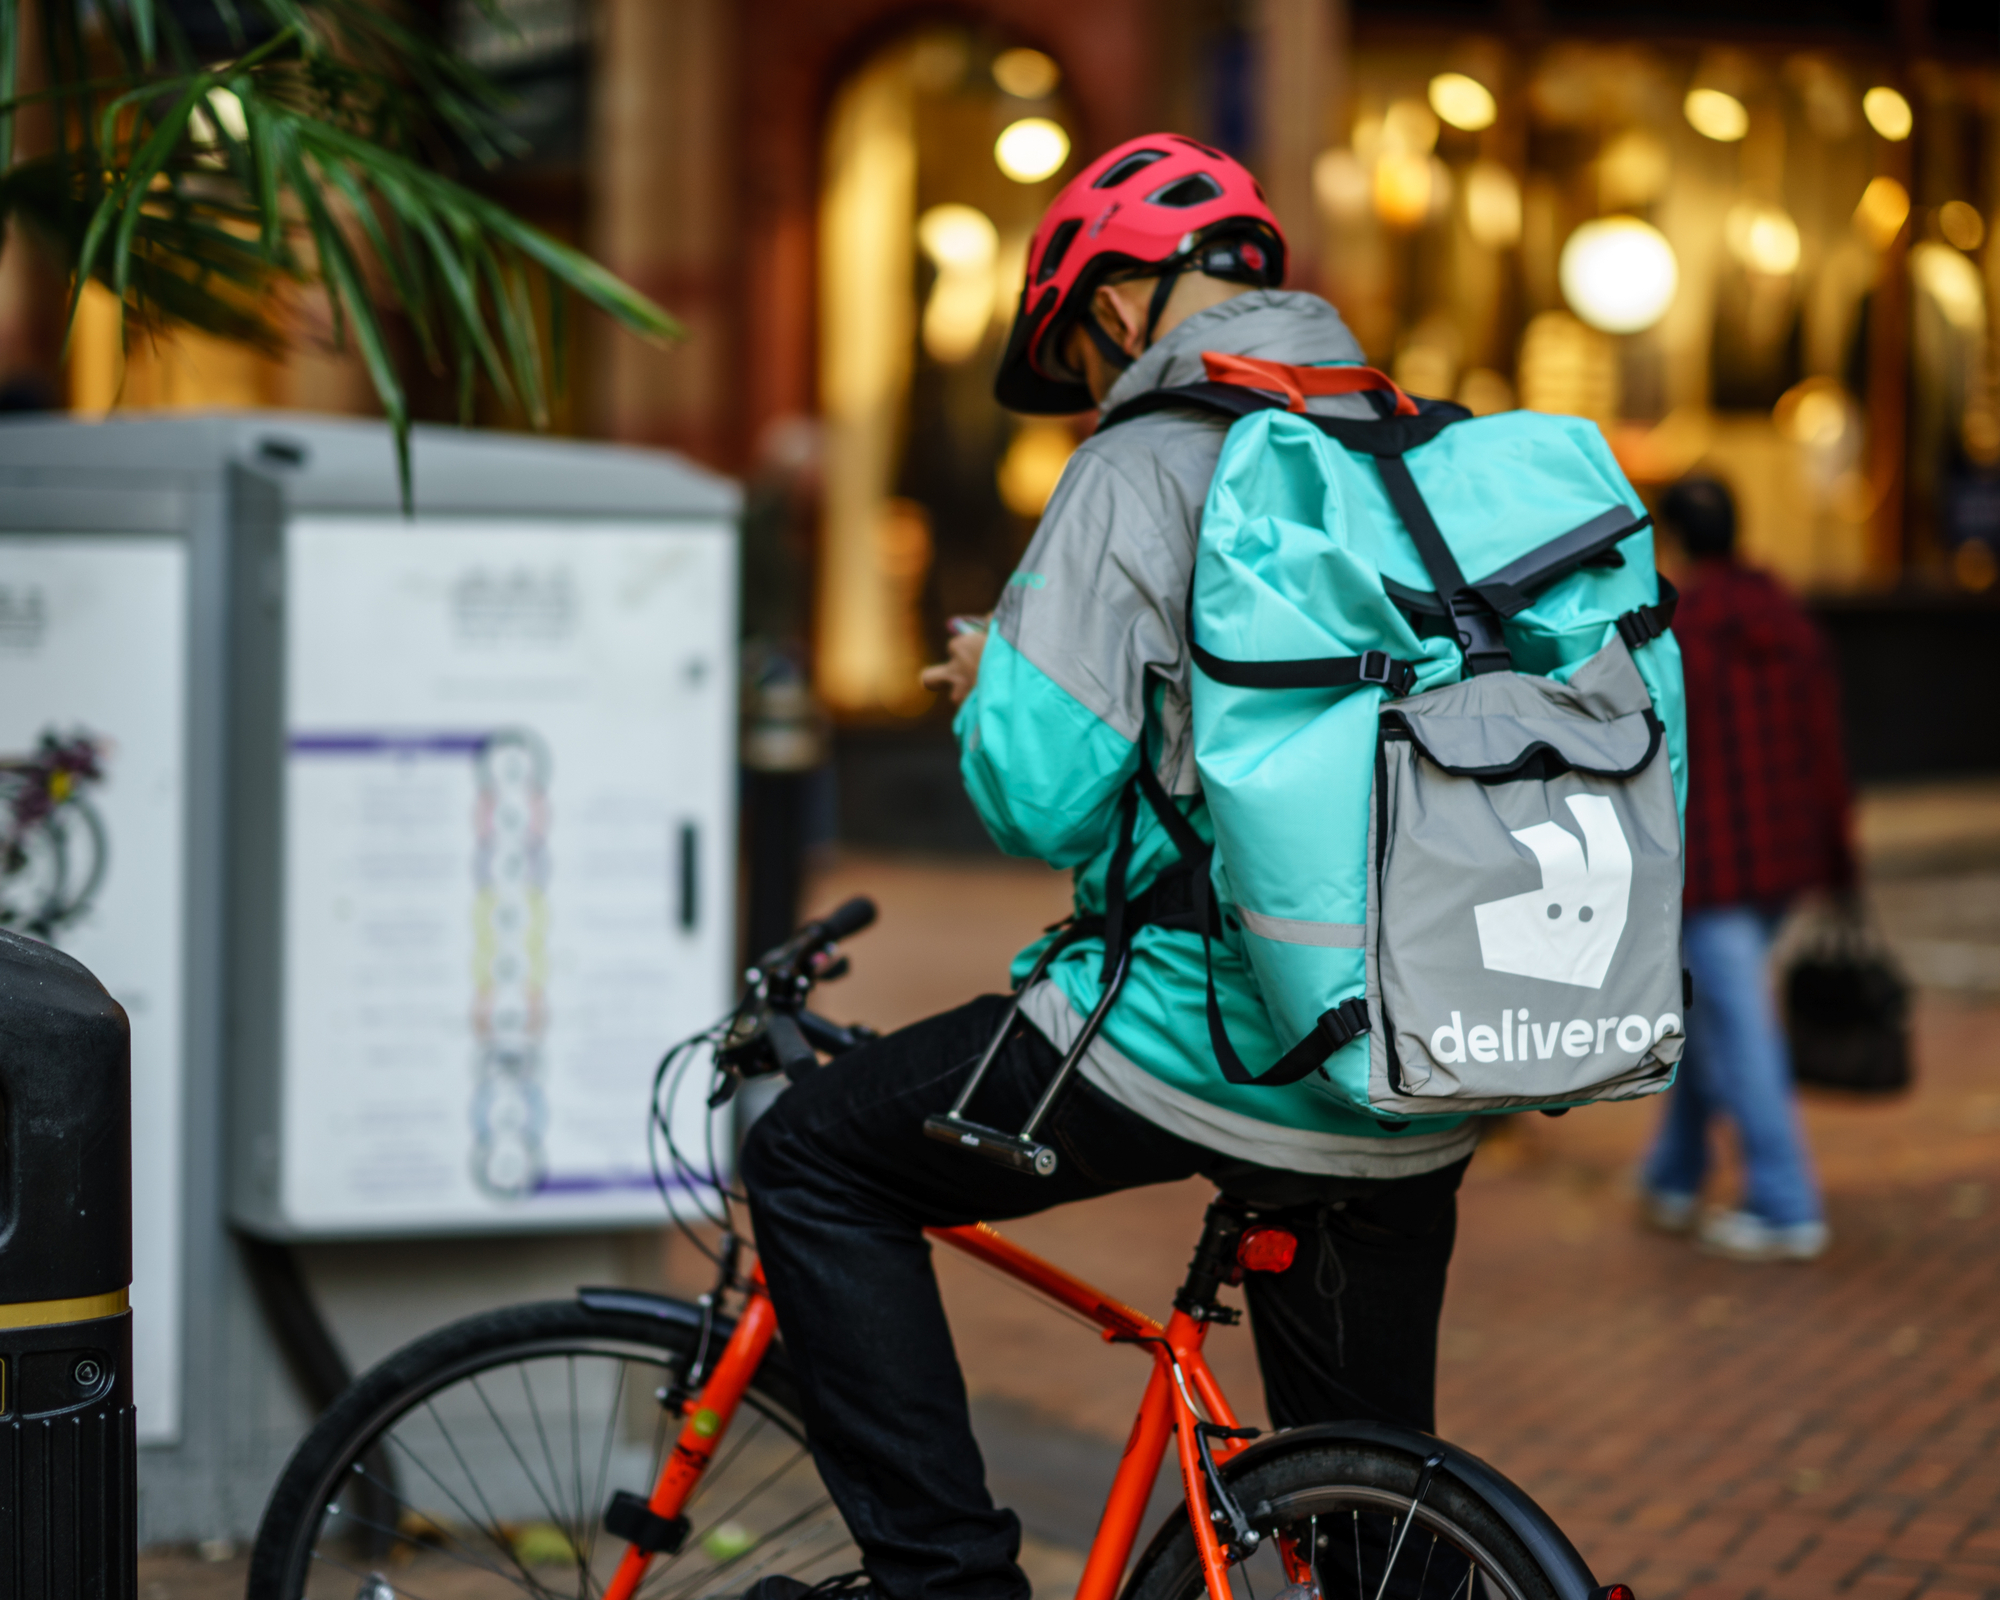 Deliveroo salivates at prospect of £8.8bn IPO valuation